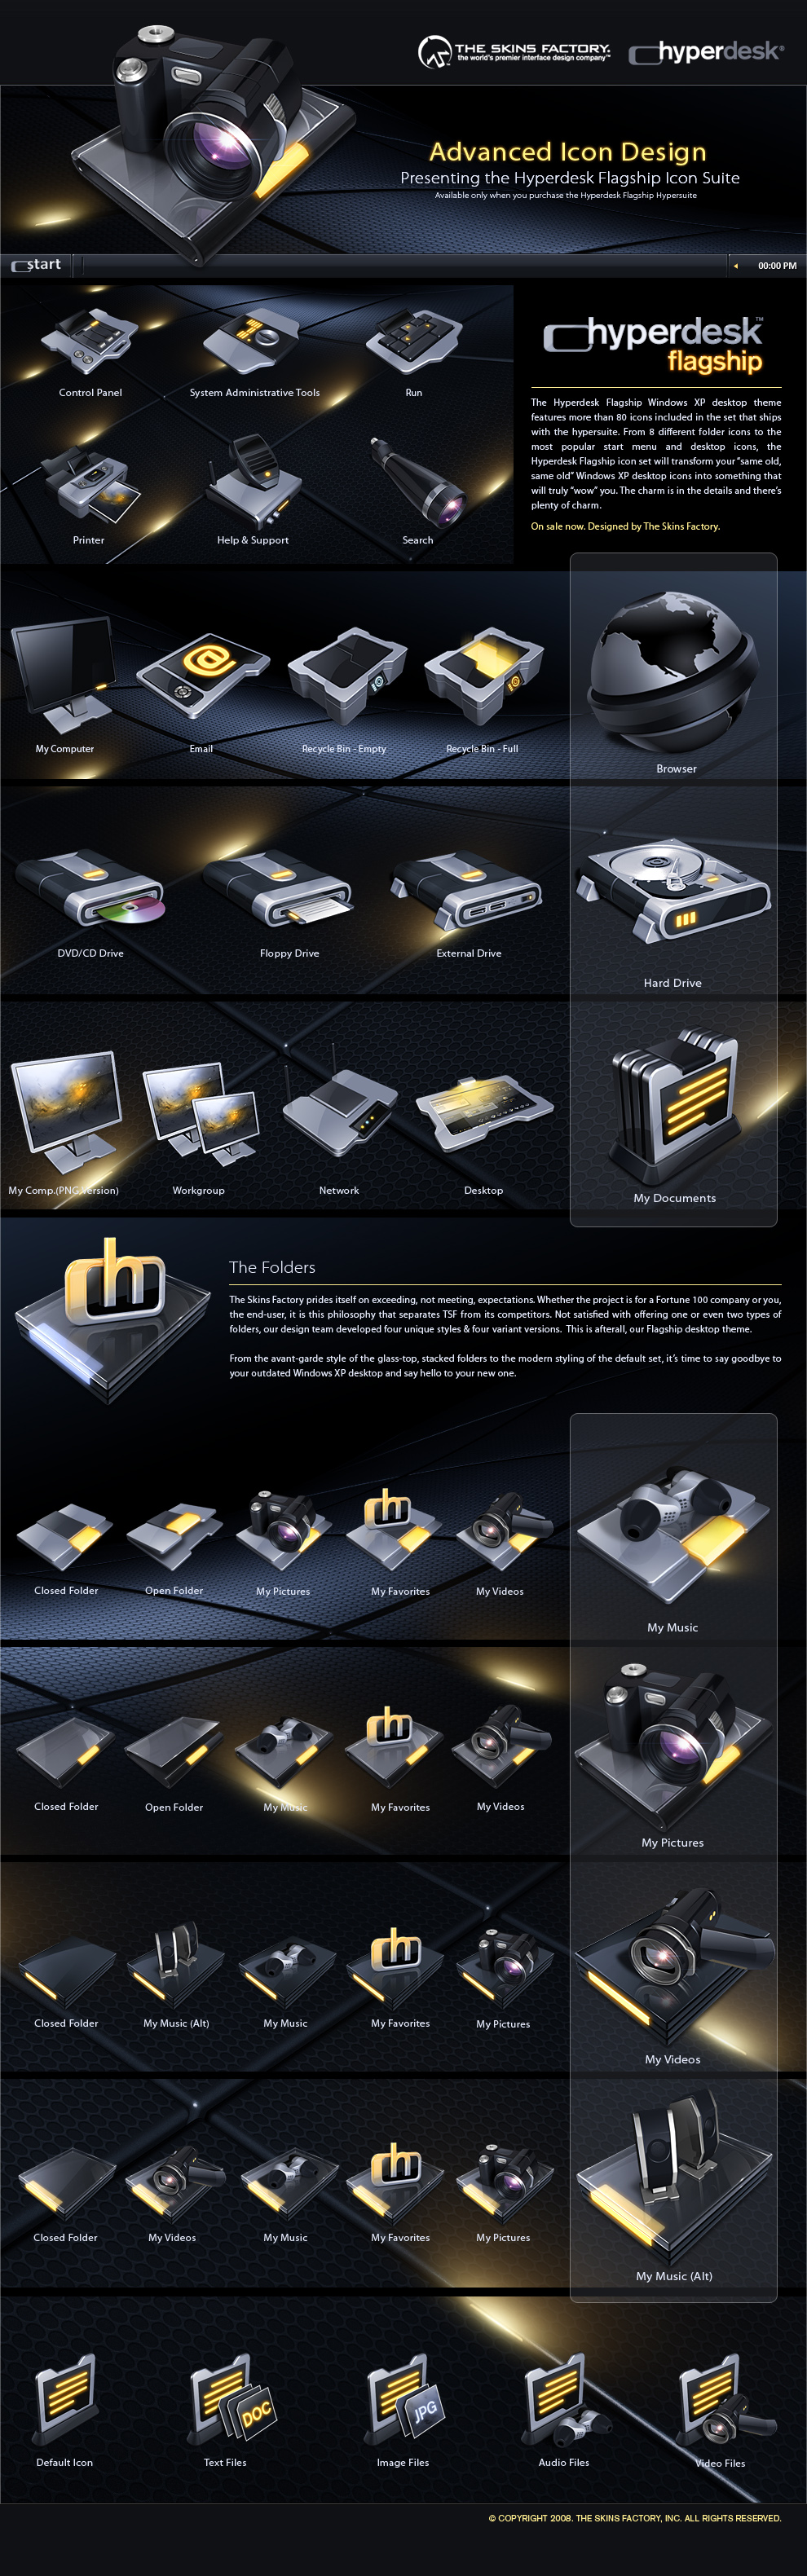 Hyperdesk Flagship Icon Set by skinsfactory